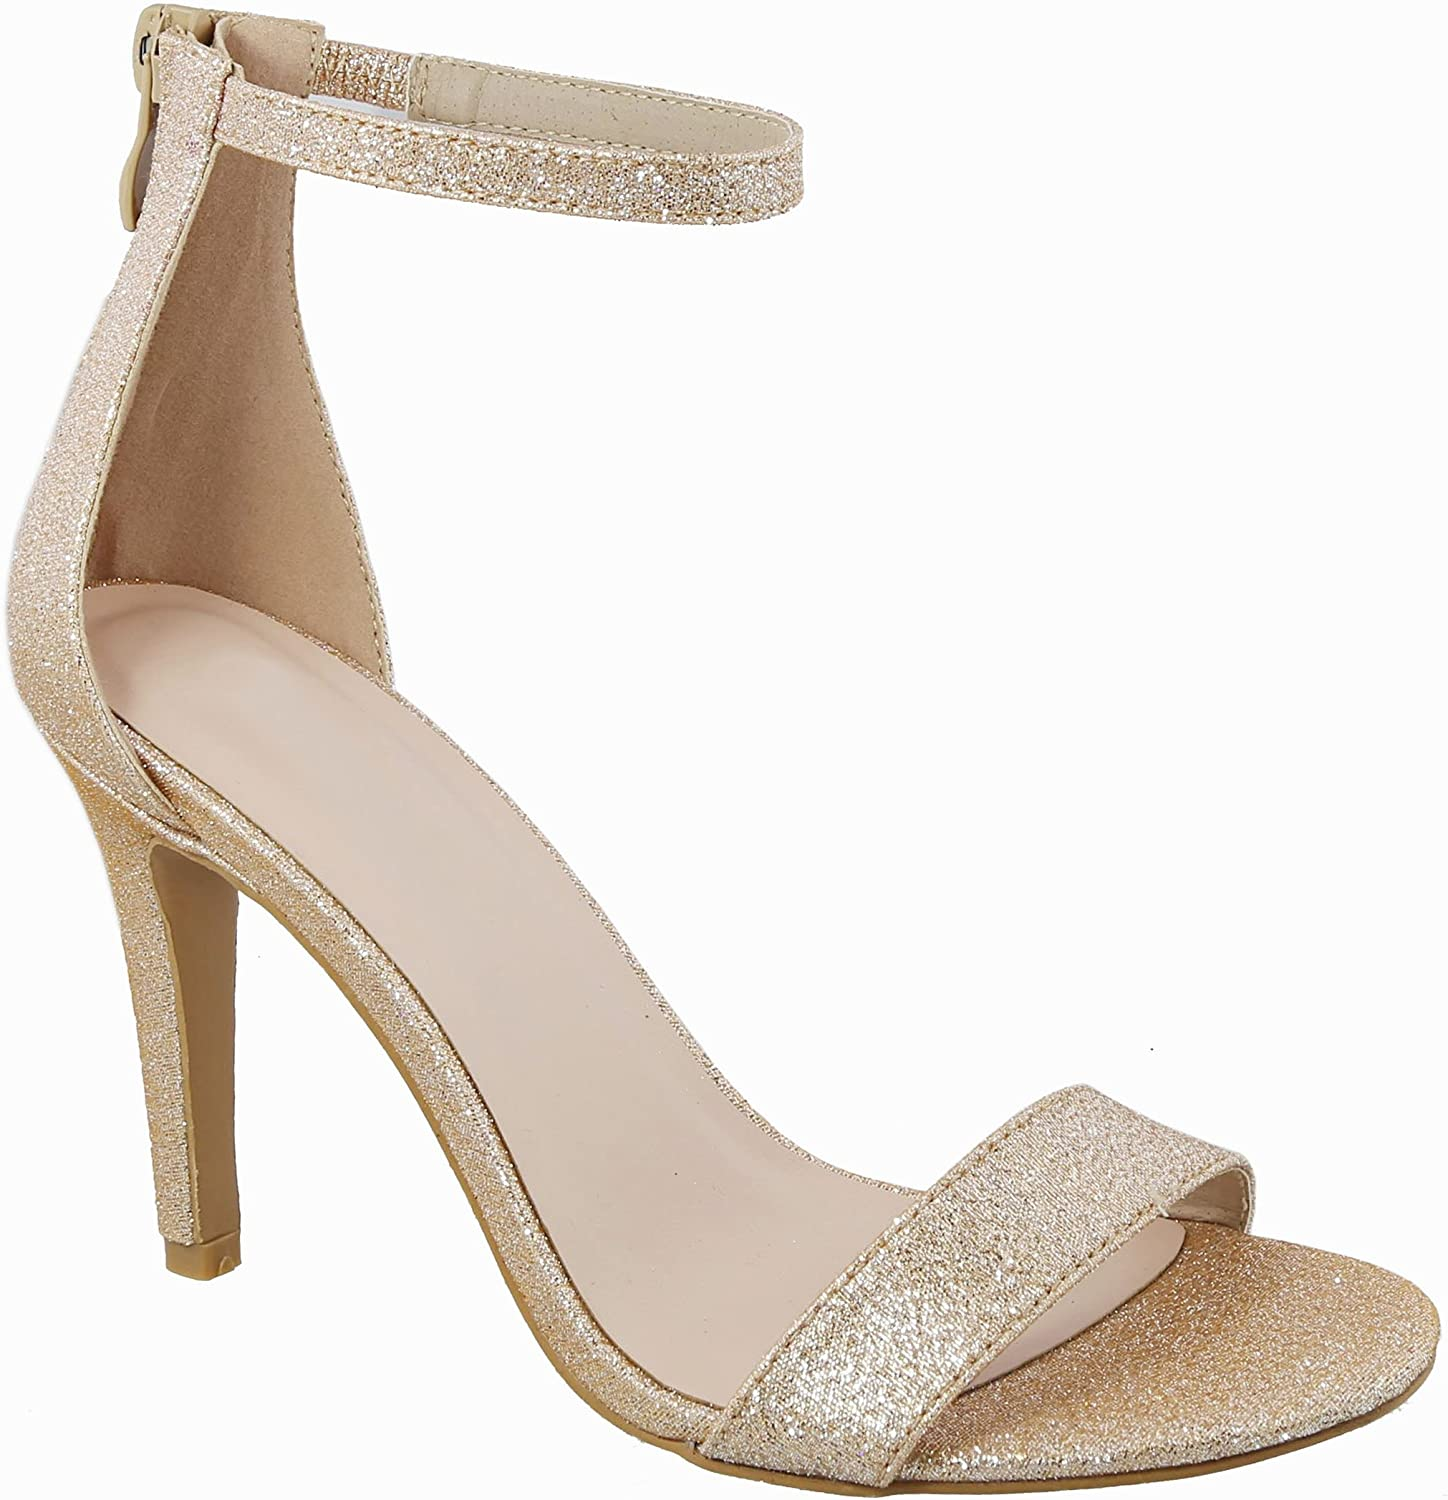 Womens Stiletto Heels Sandal Ankle Strap Fashion-Forward Dress Party Heel Summer Wedding Party Evening Shoes Champagne 7.5